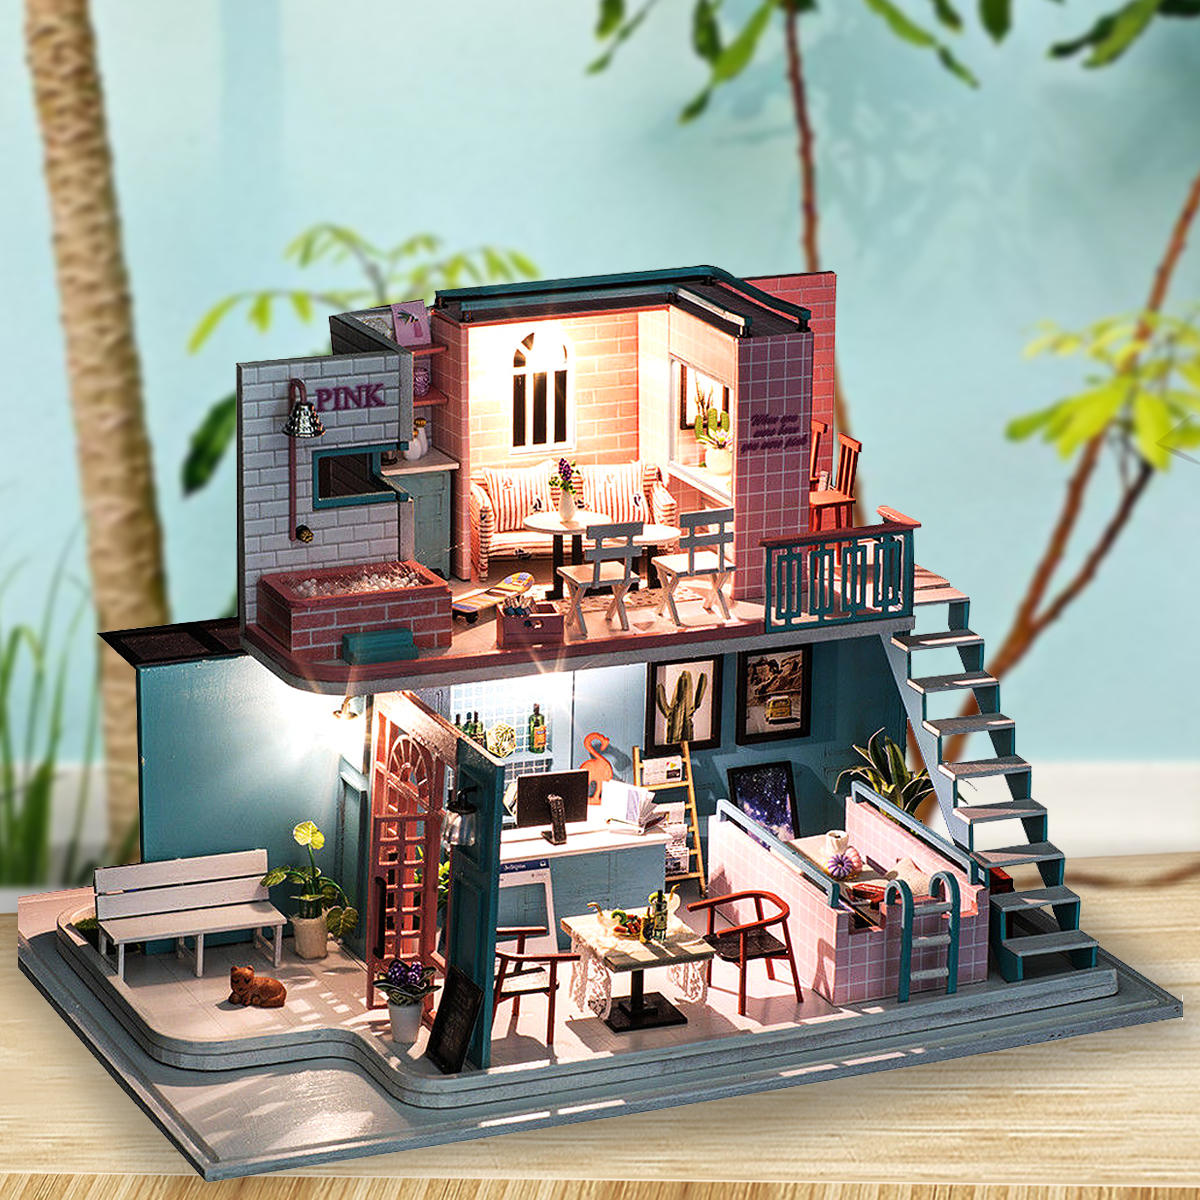 Handmade 3d Wooden Miniatures Doll House Pink Cafe Dollhouse